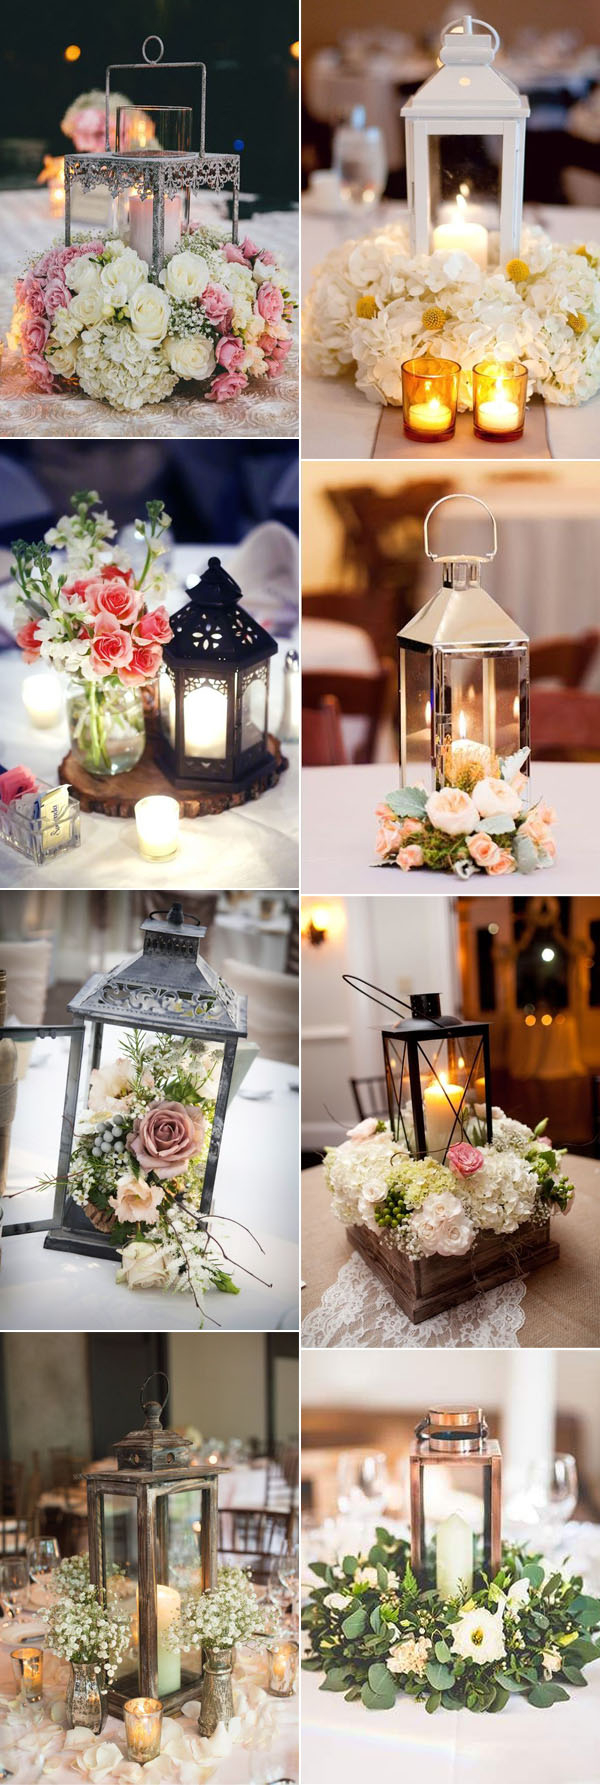 Homemade Decorations For Weddings Vintage Centerpieces With Pearls Cheap Wedding In Bulk For Sale